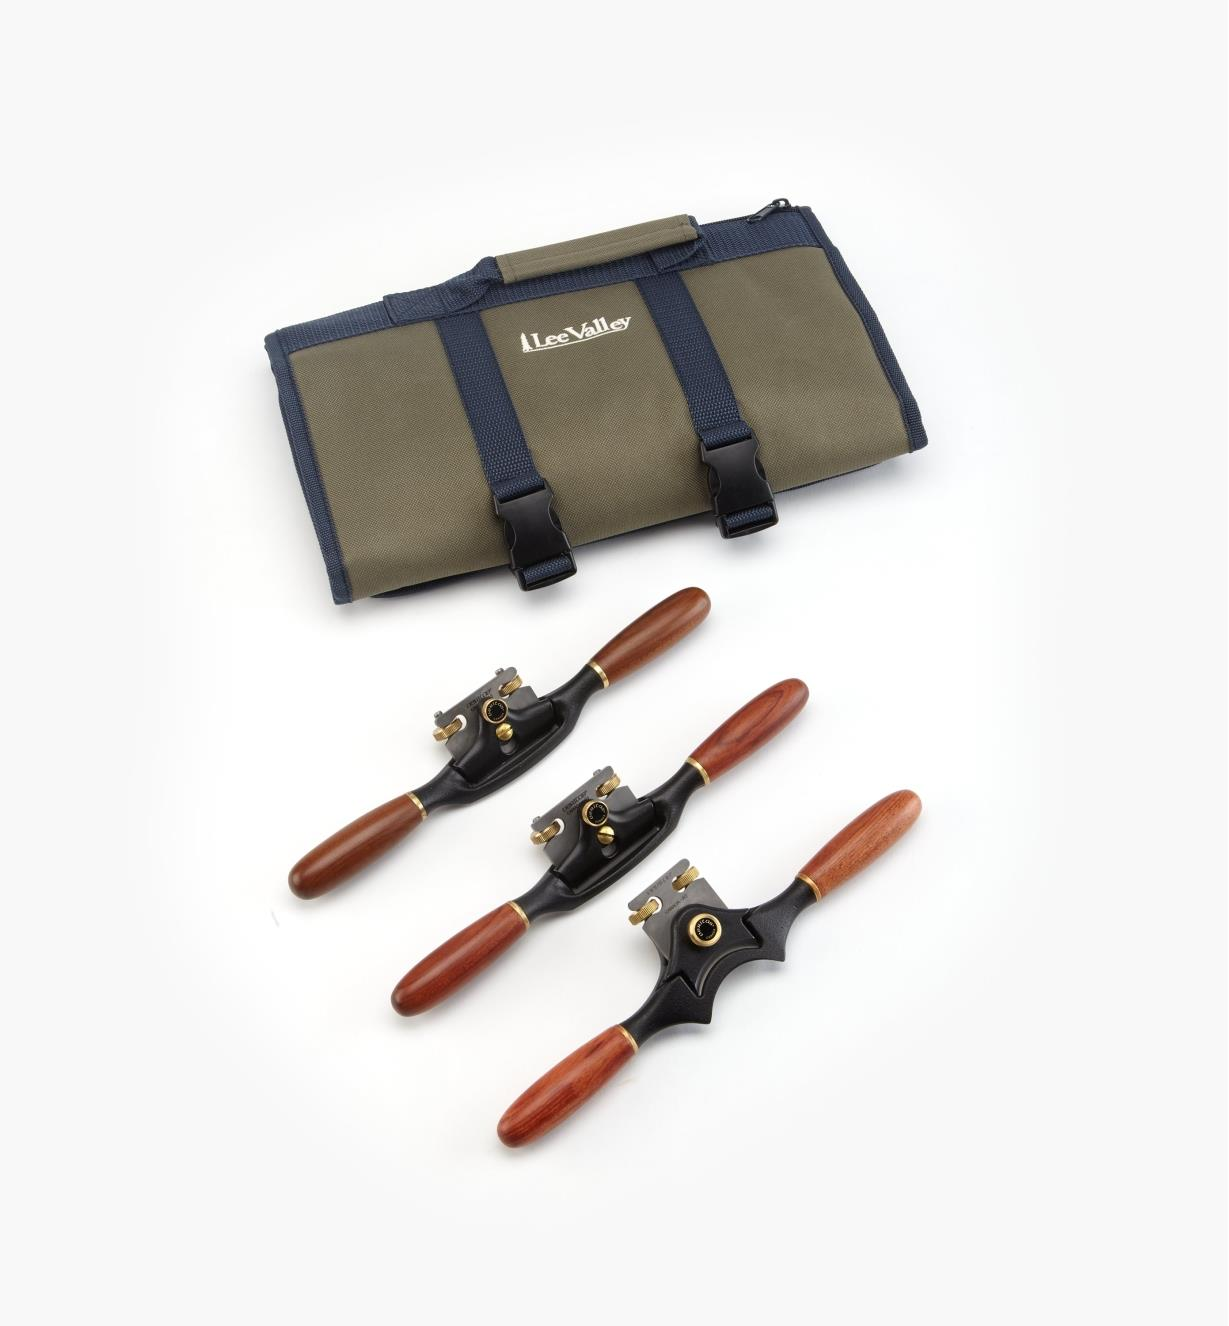 05P3315 - Veritas Spokeshave Set (A2) & Roll